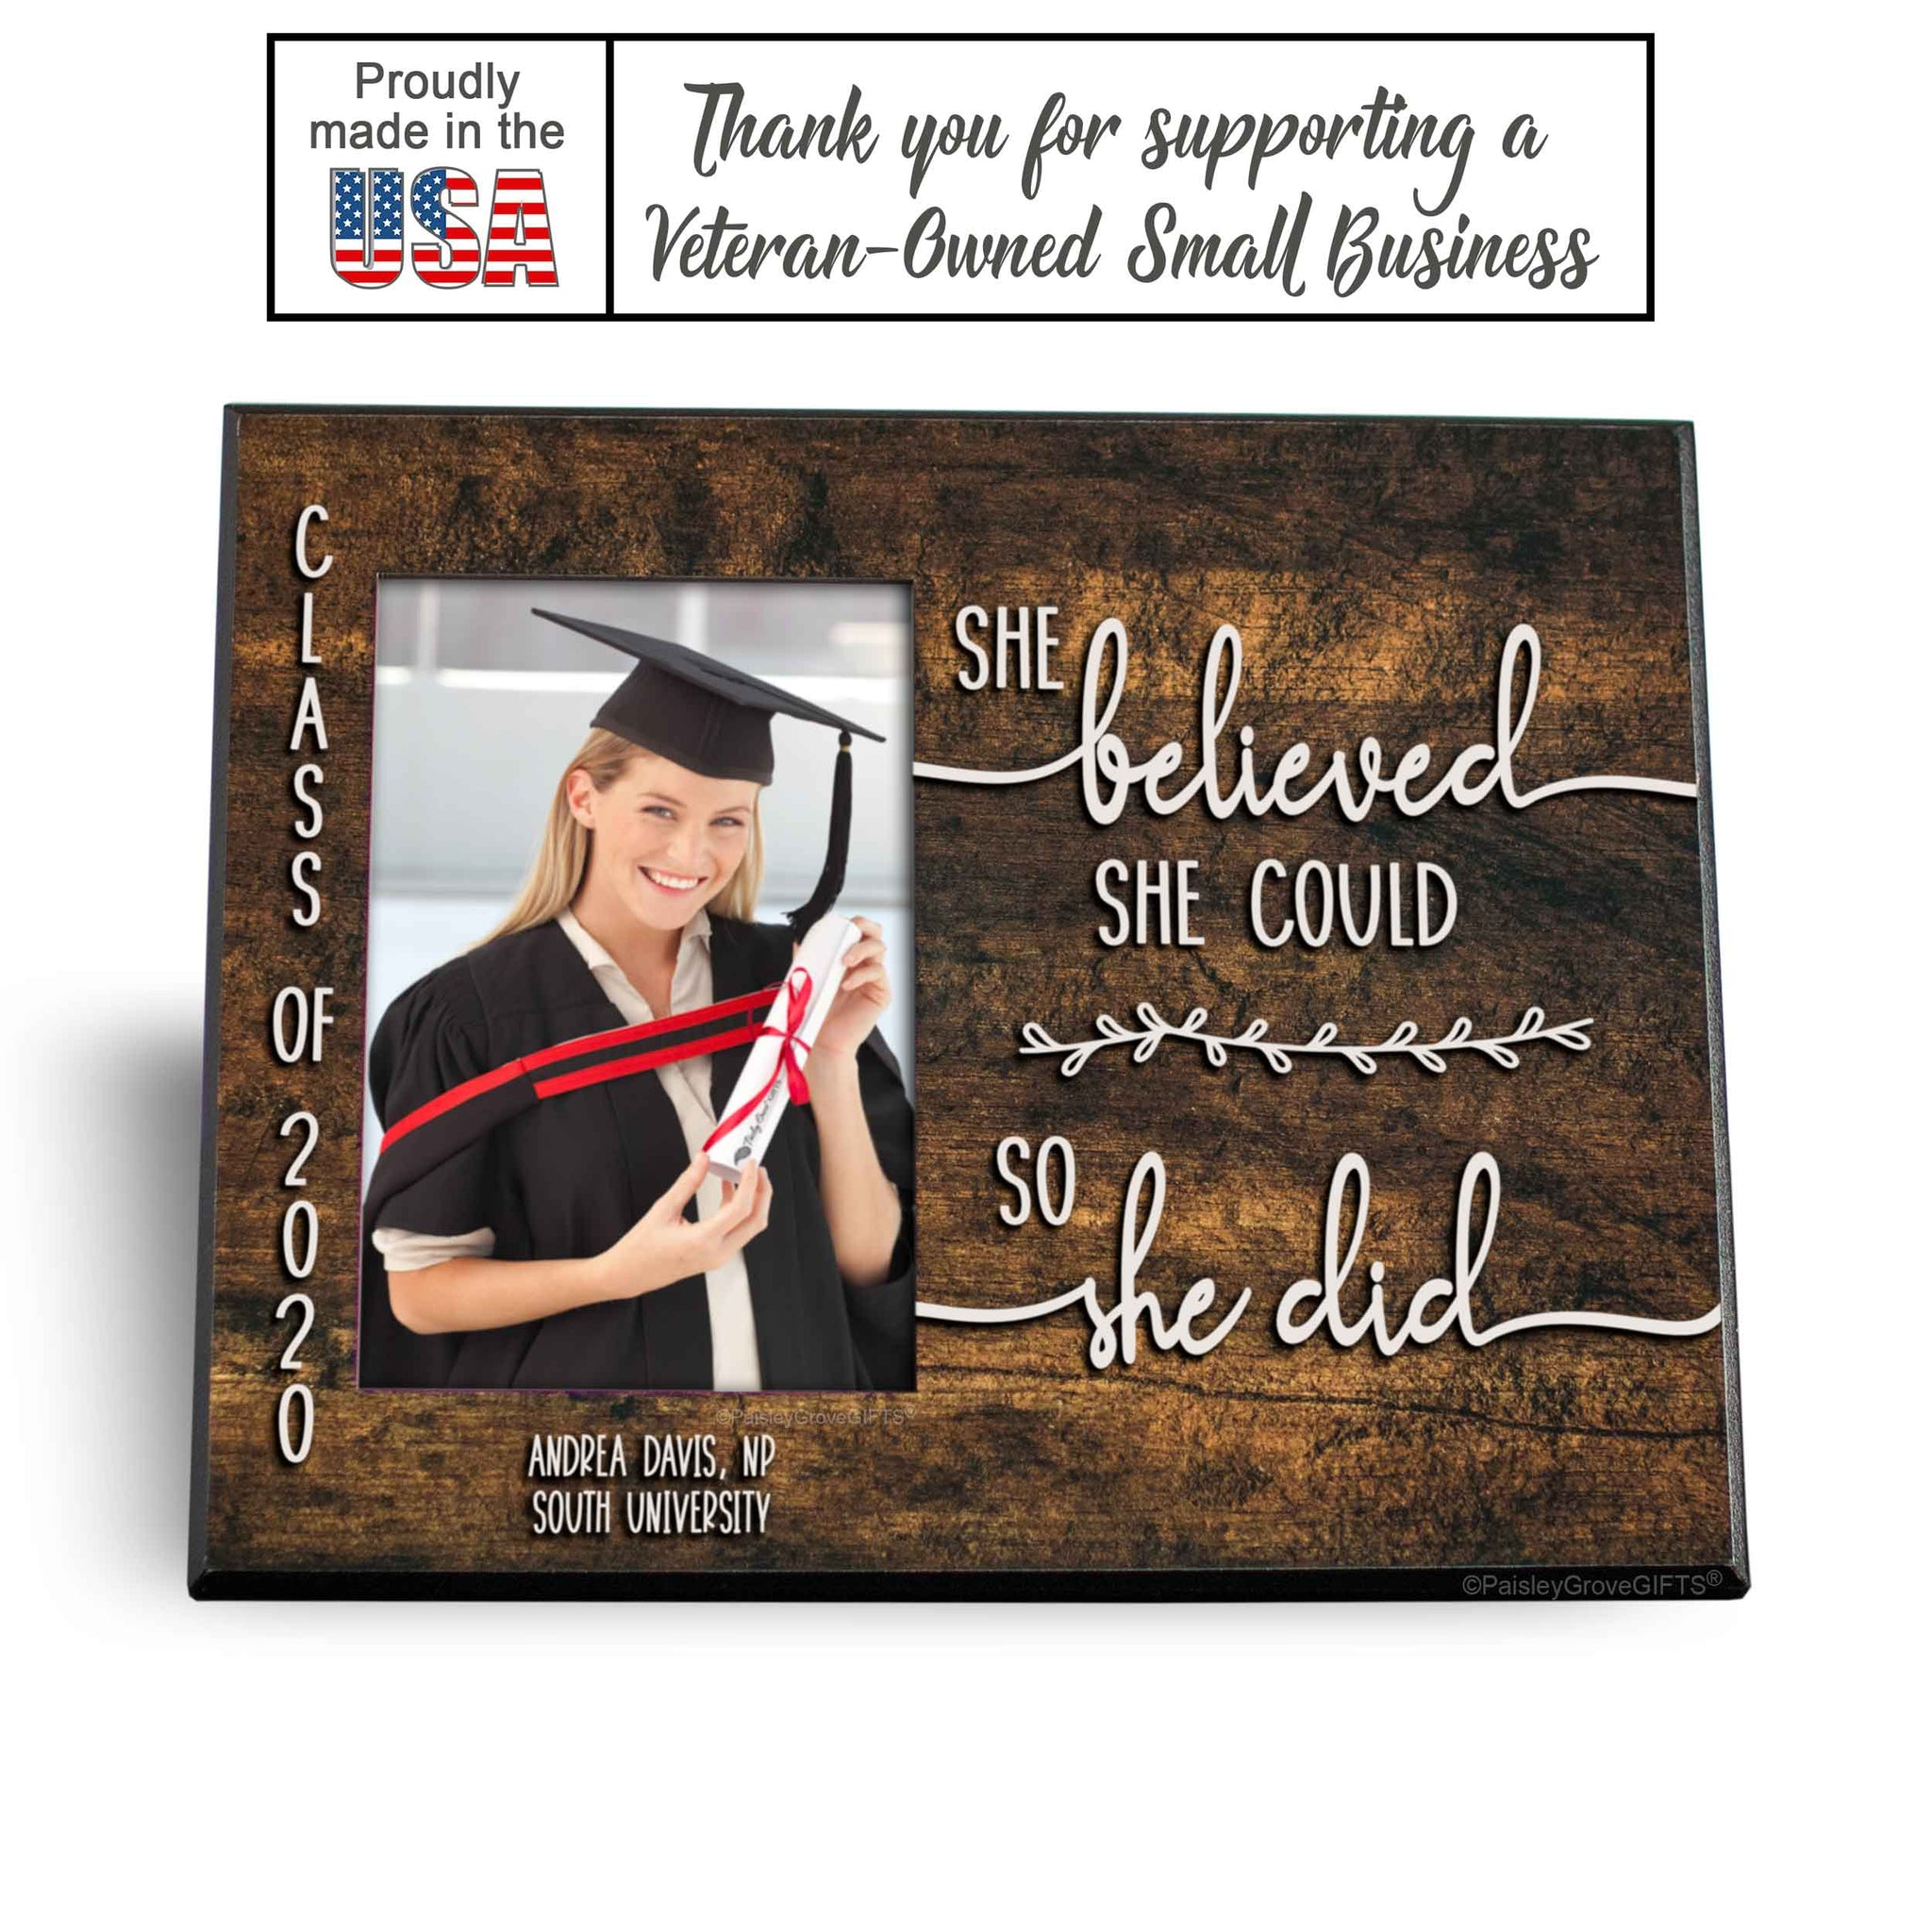 CopyrightPaisleyGroveGIFTS S226f2 Made in the USA Sentimental Graduation Keepsake Graduate Picture Frame Customized